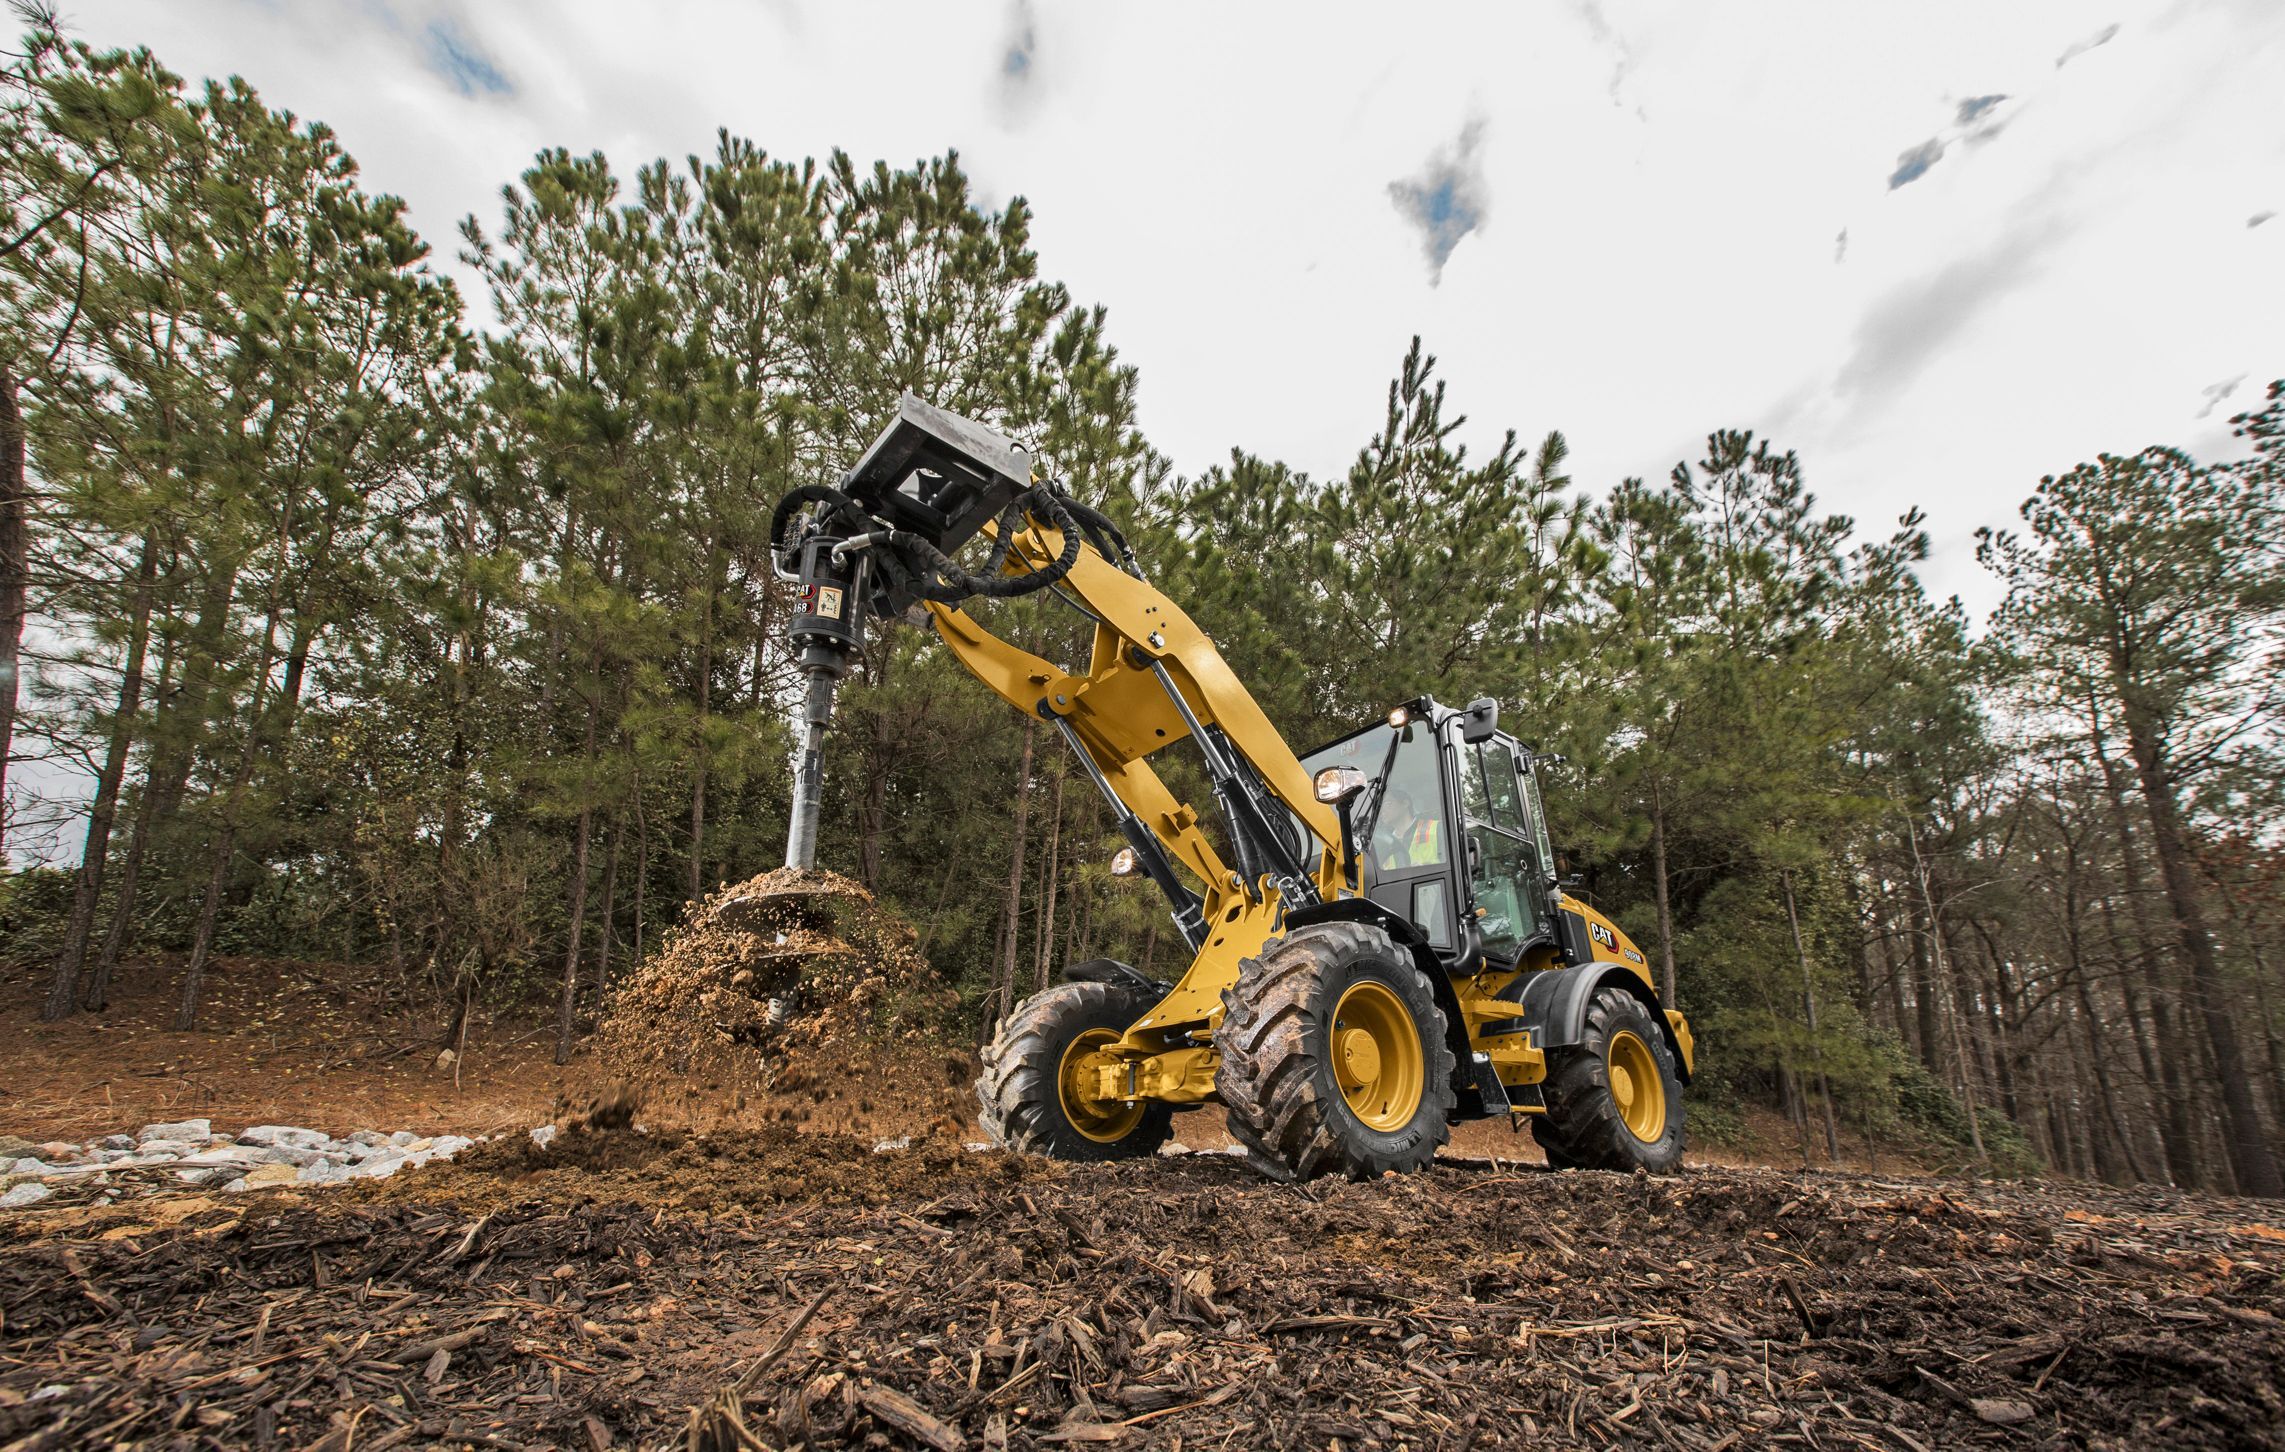 5 Must-Have Attachments for Your Heavy Equipment